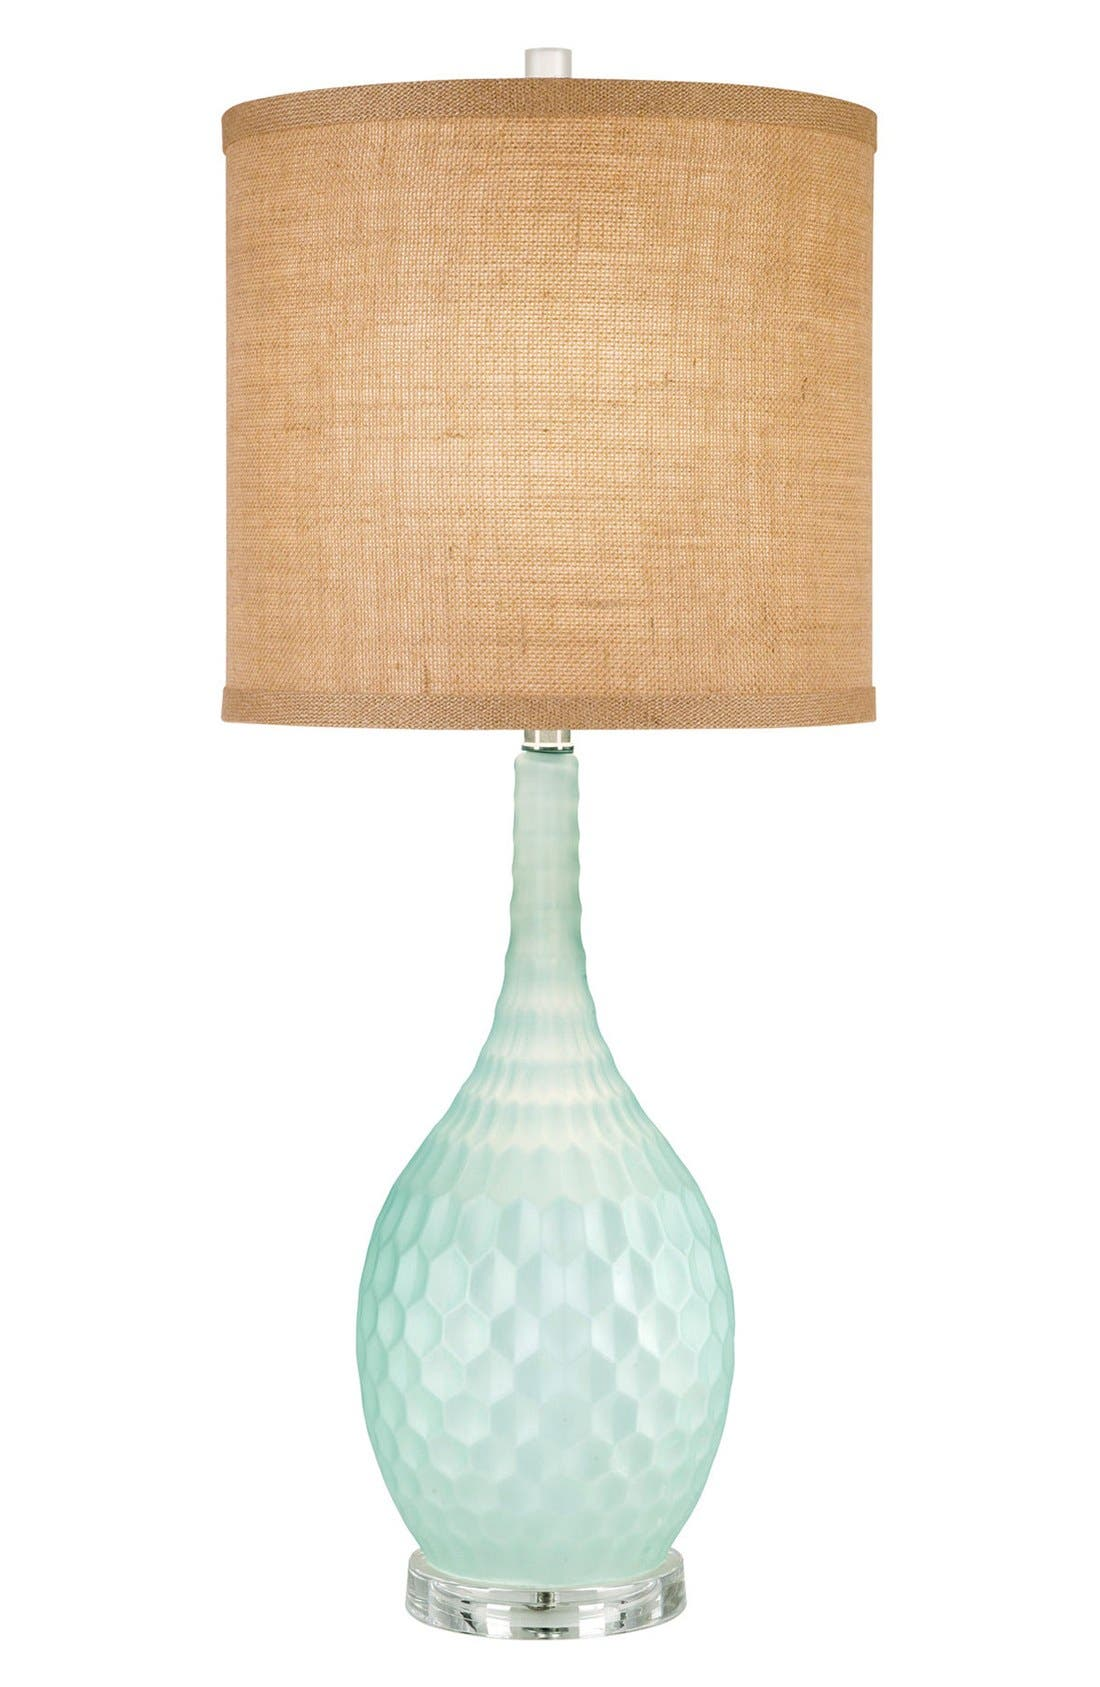 JAlexander 'Seafoam' Glass Table Lamp,                             Main thumbnail 1, color,                             400